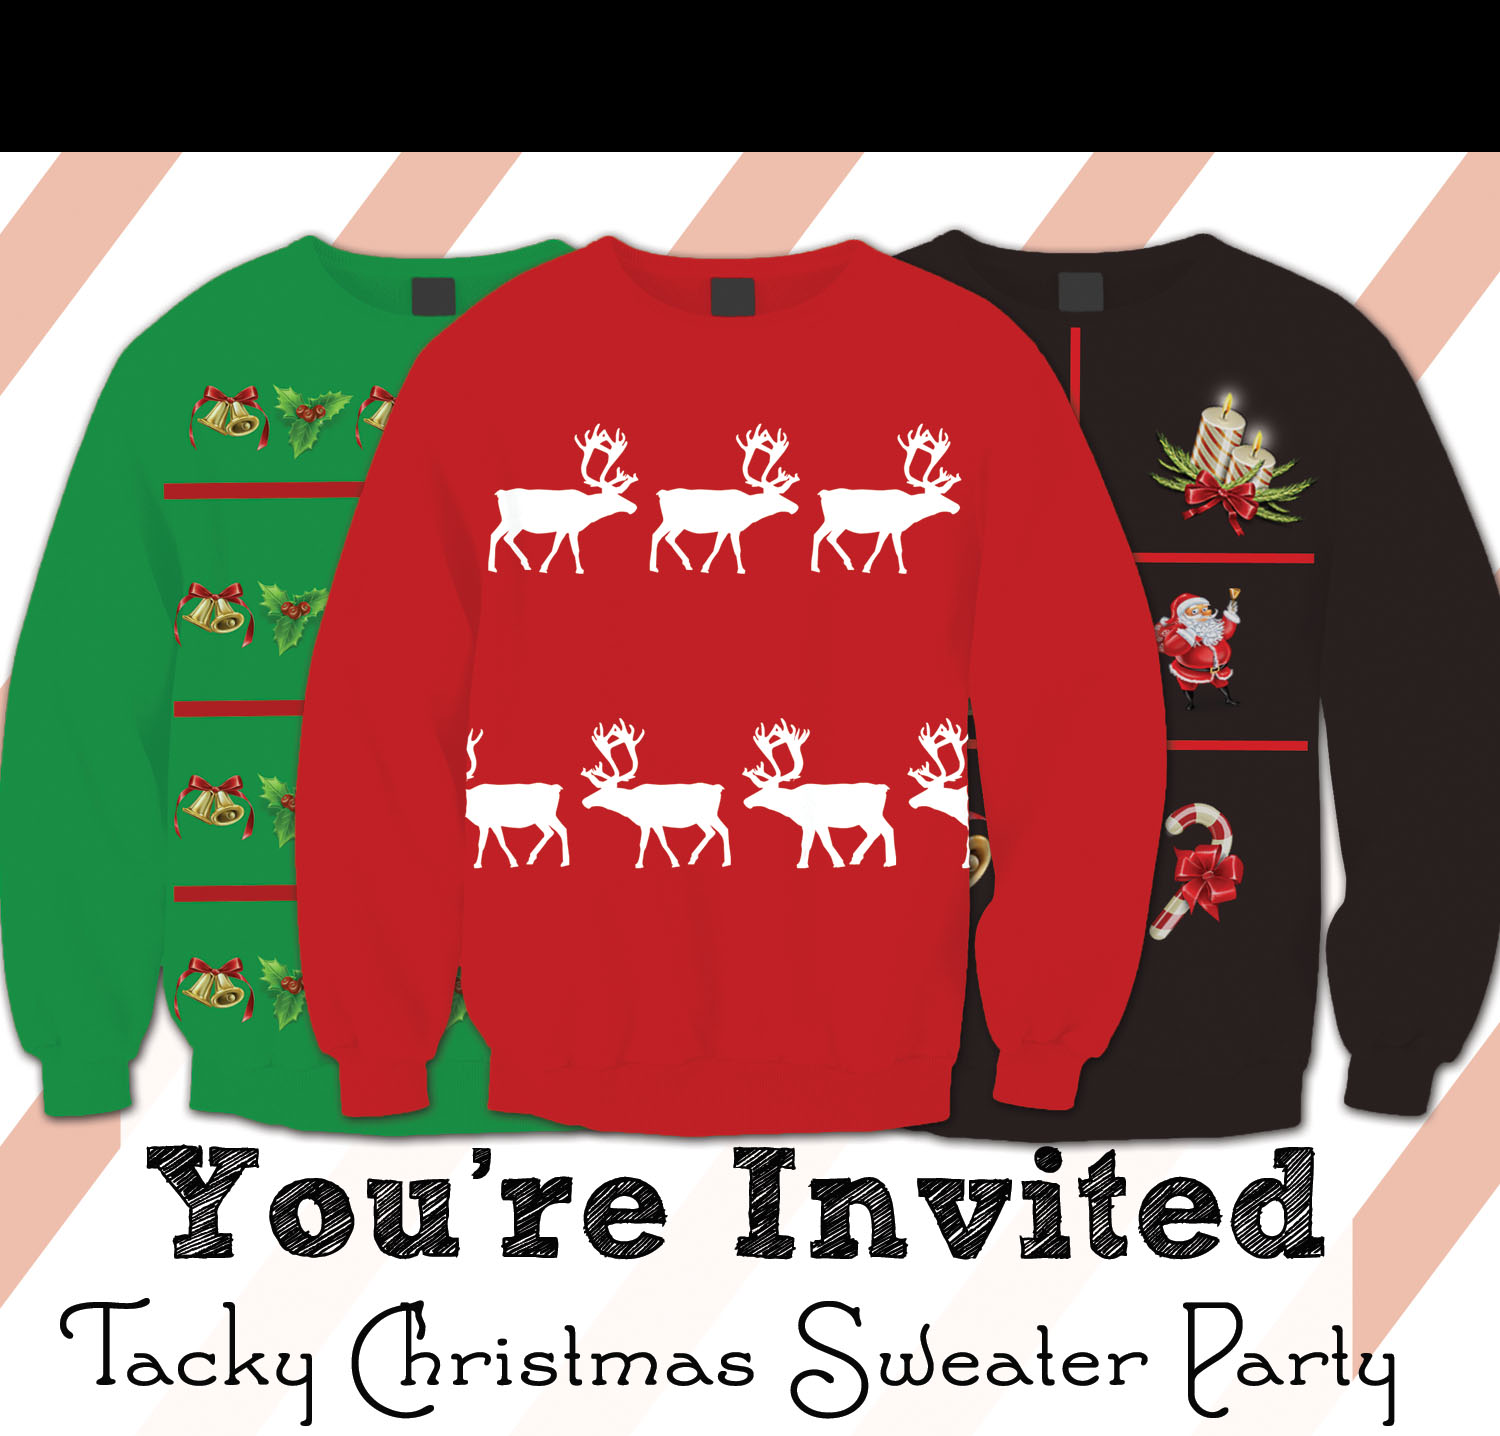 Tacky Christmas Sweater Party Invitations Free Printable This Pug Life